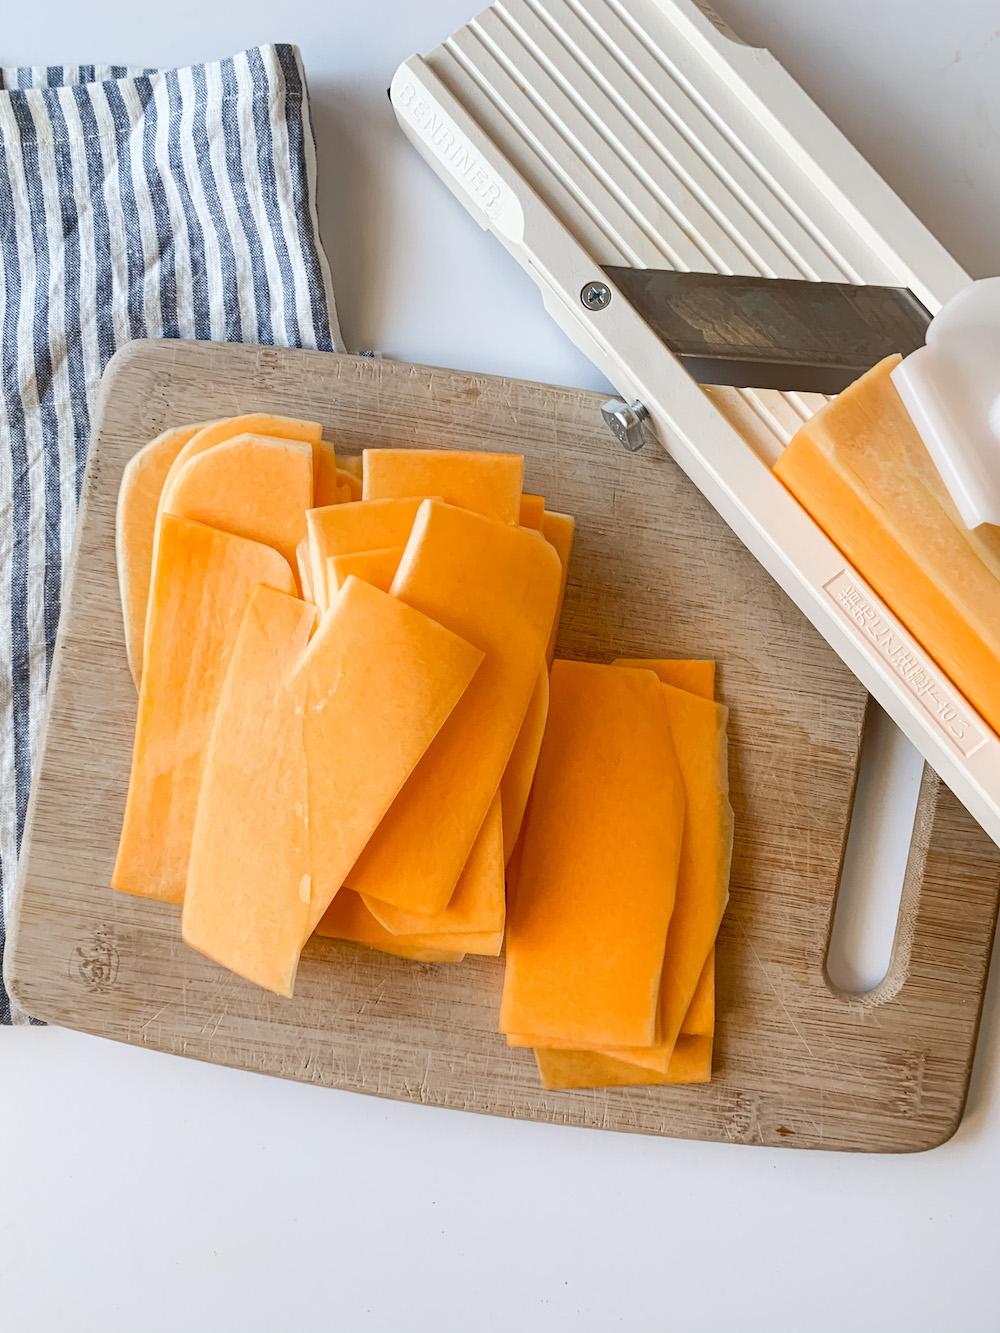 Thinly sliced pile of butternut squash sheets